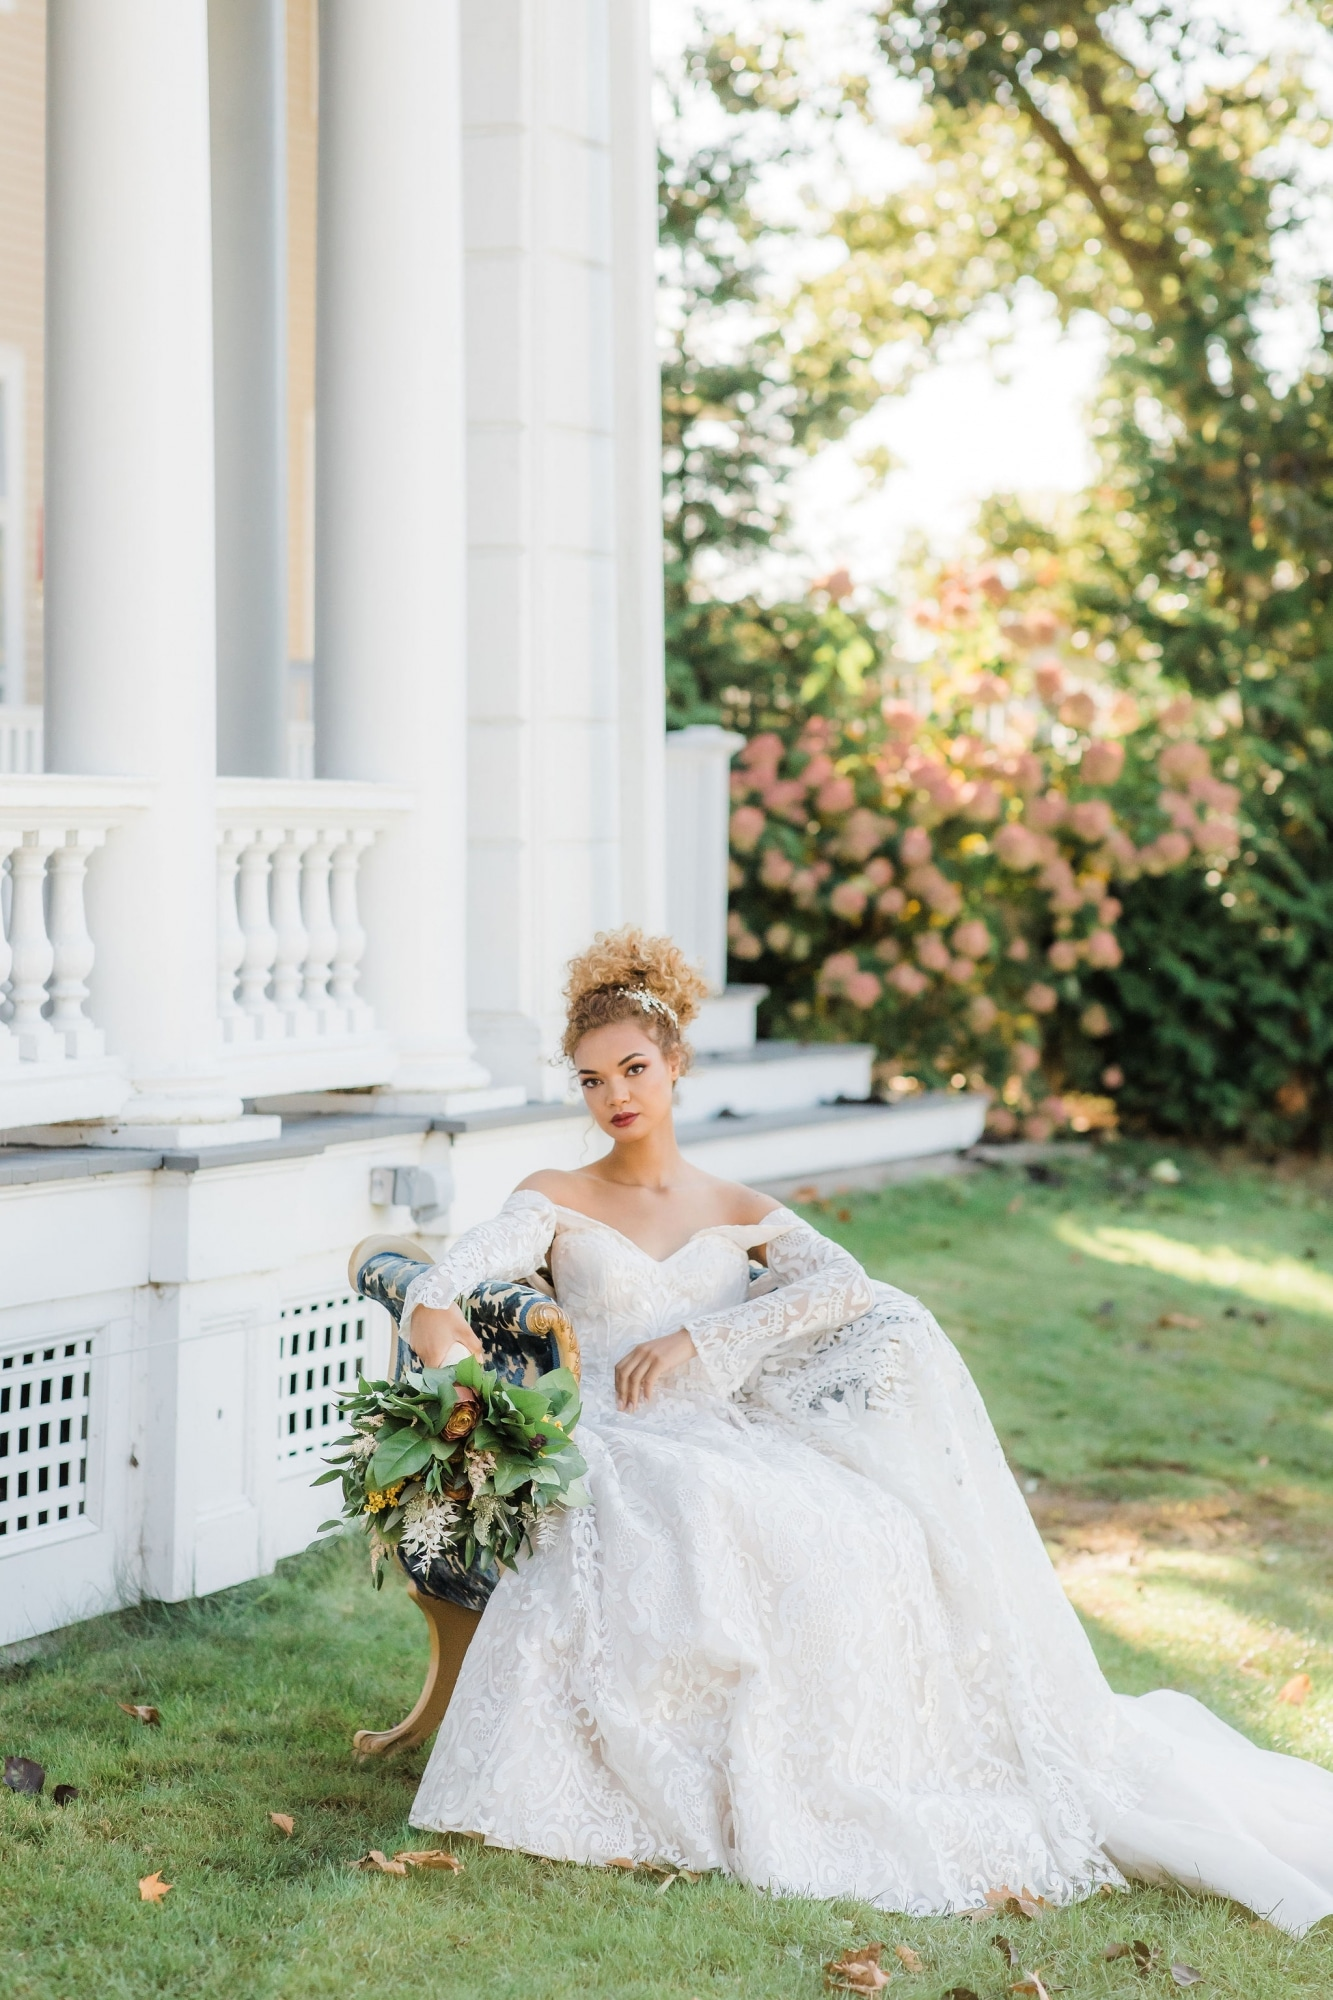 bride sitting on bench leaning over with fall floral bouquet in hand